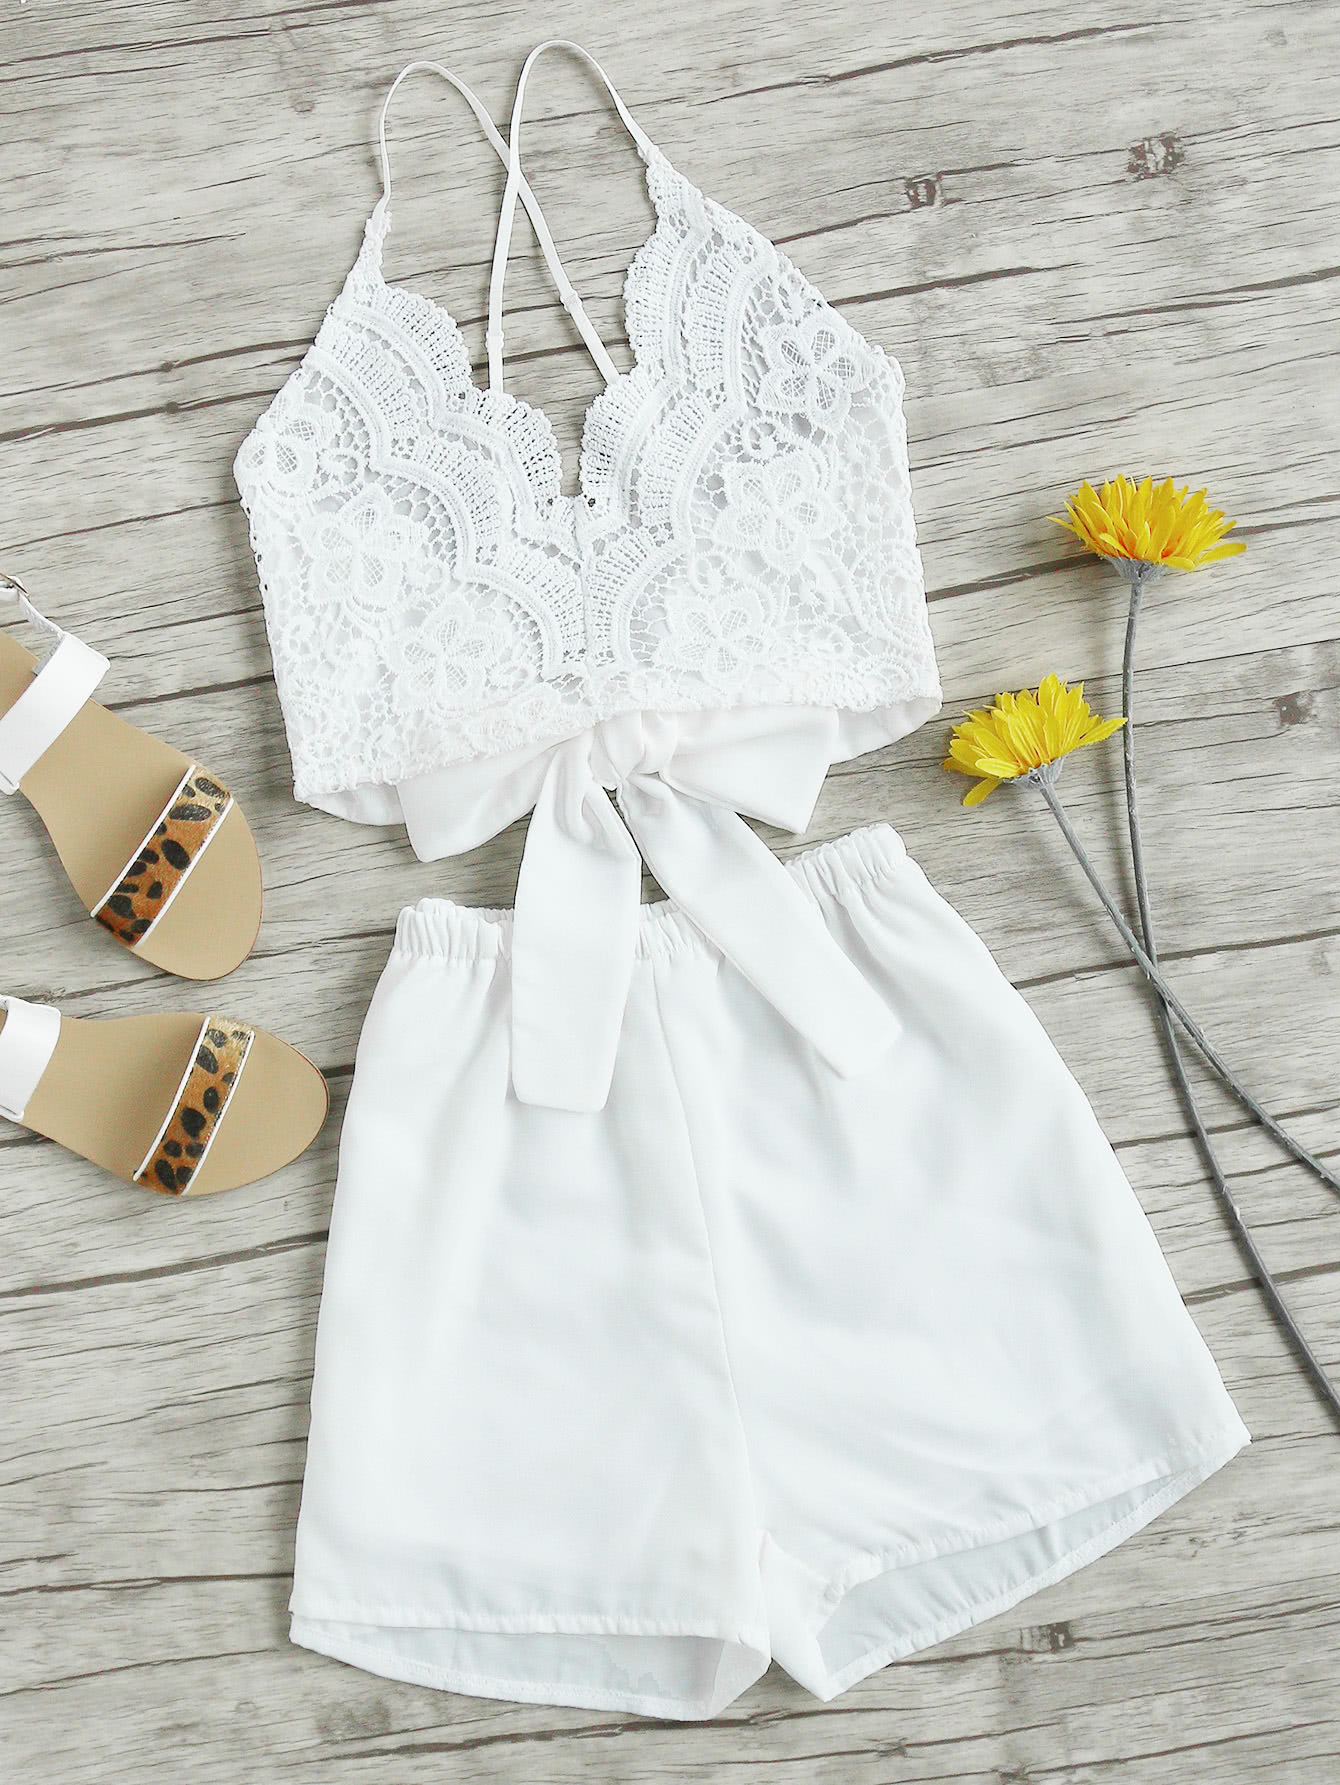 Lace Panel Criss Cross Bow Tie Back Cami Top With Shorts tie back crochet lace cami top